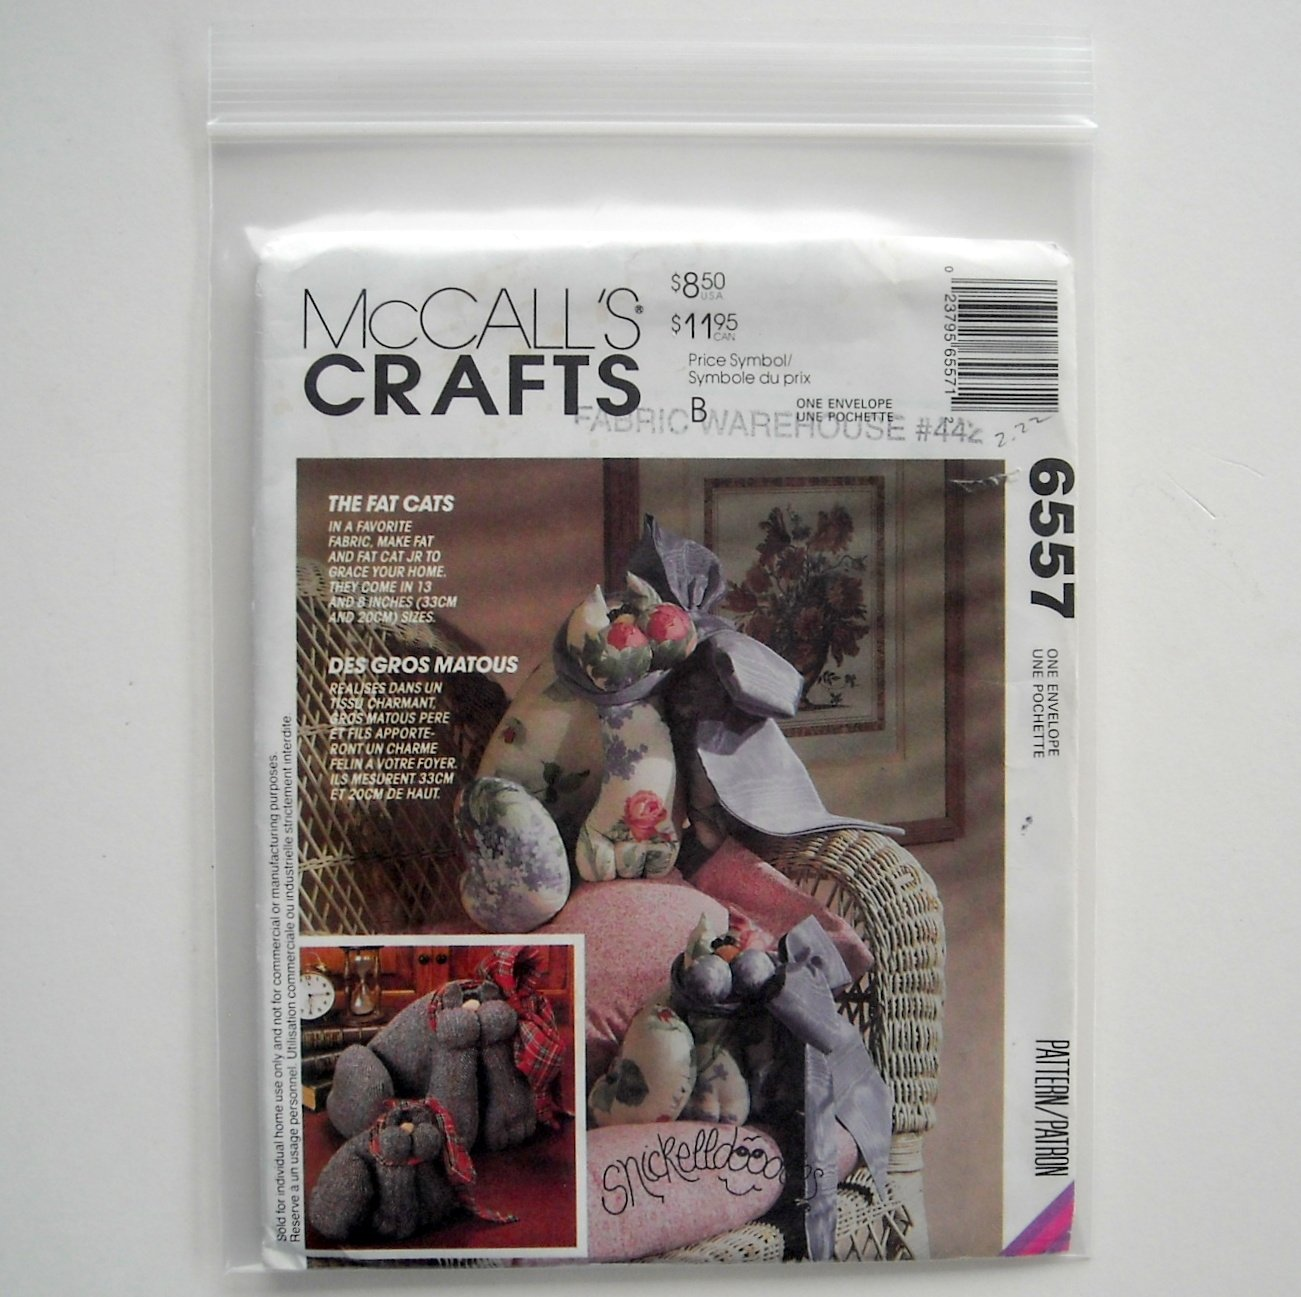 The Fat Cats 1993 Vintage McCalls Crafts Sewing Pattern 6557